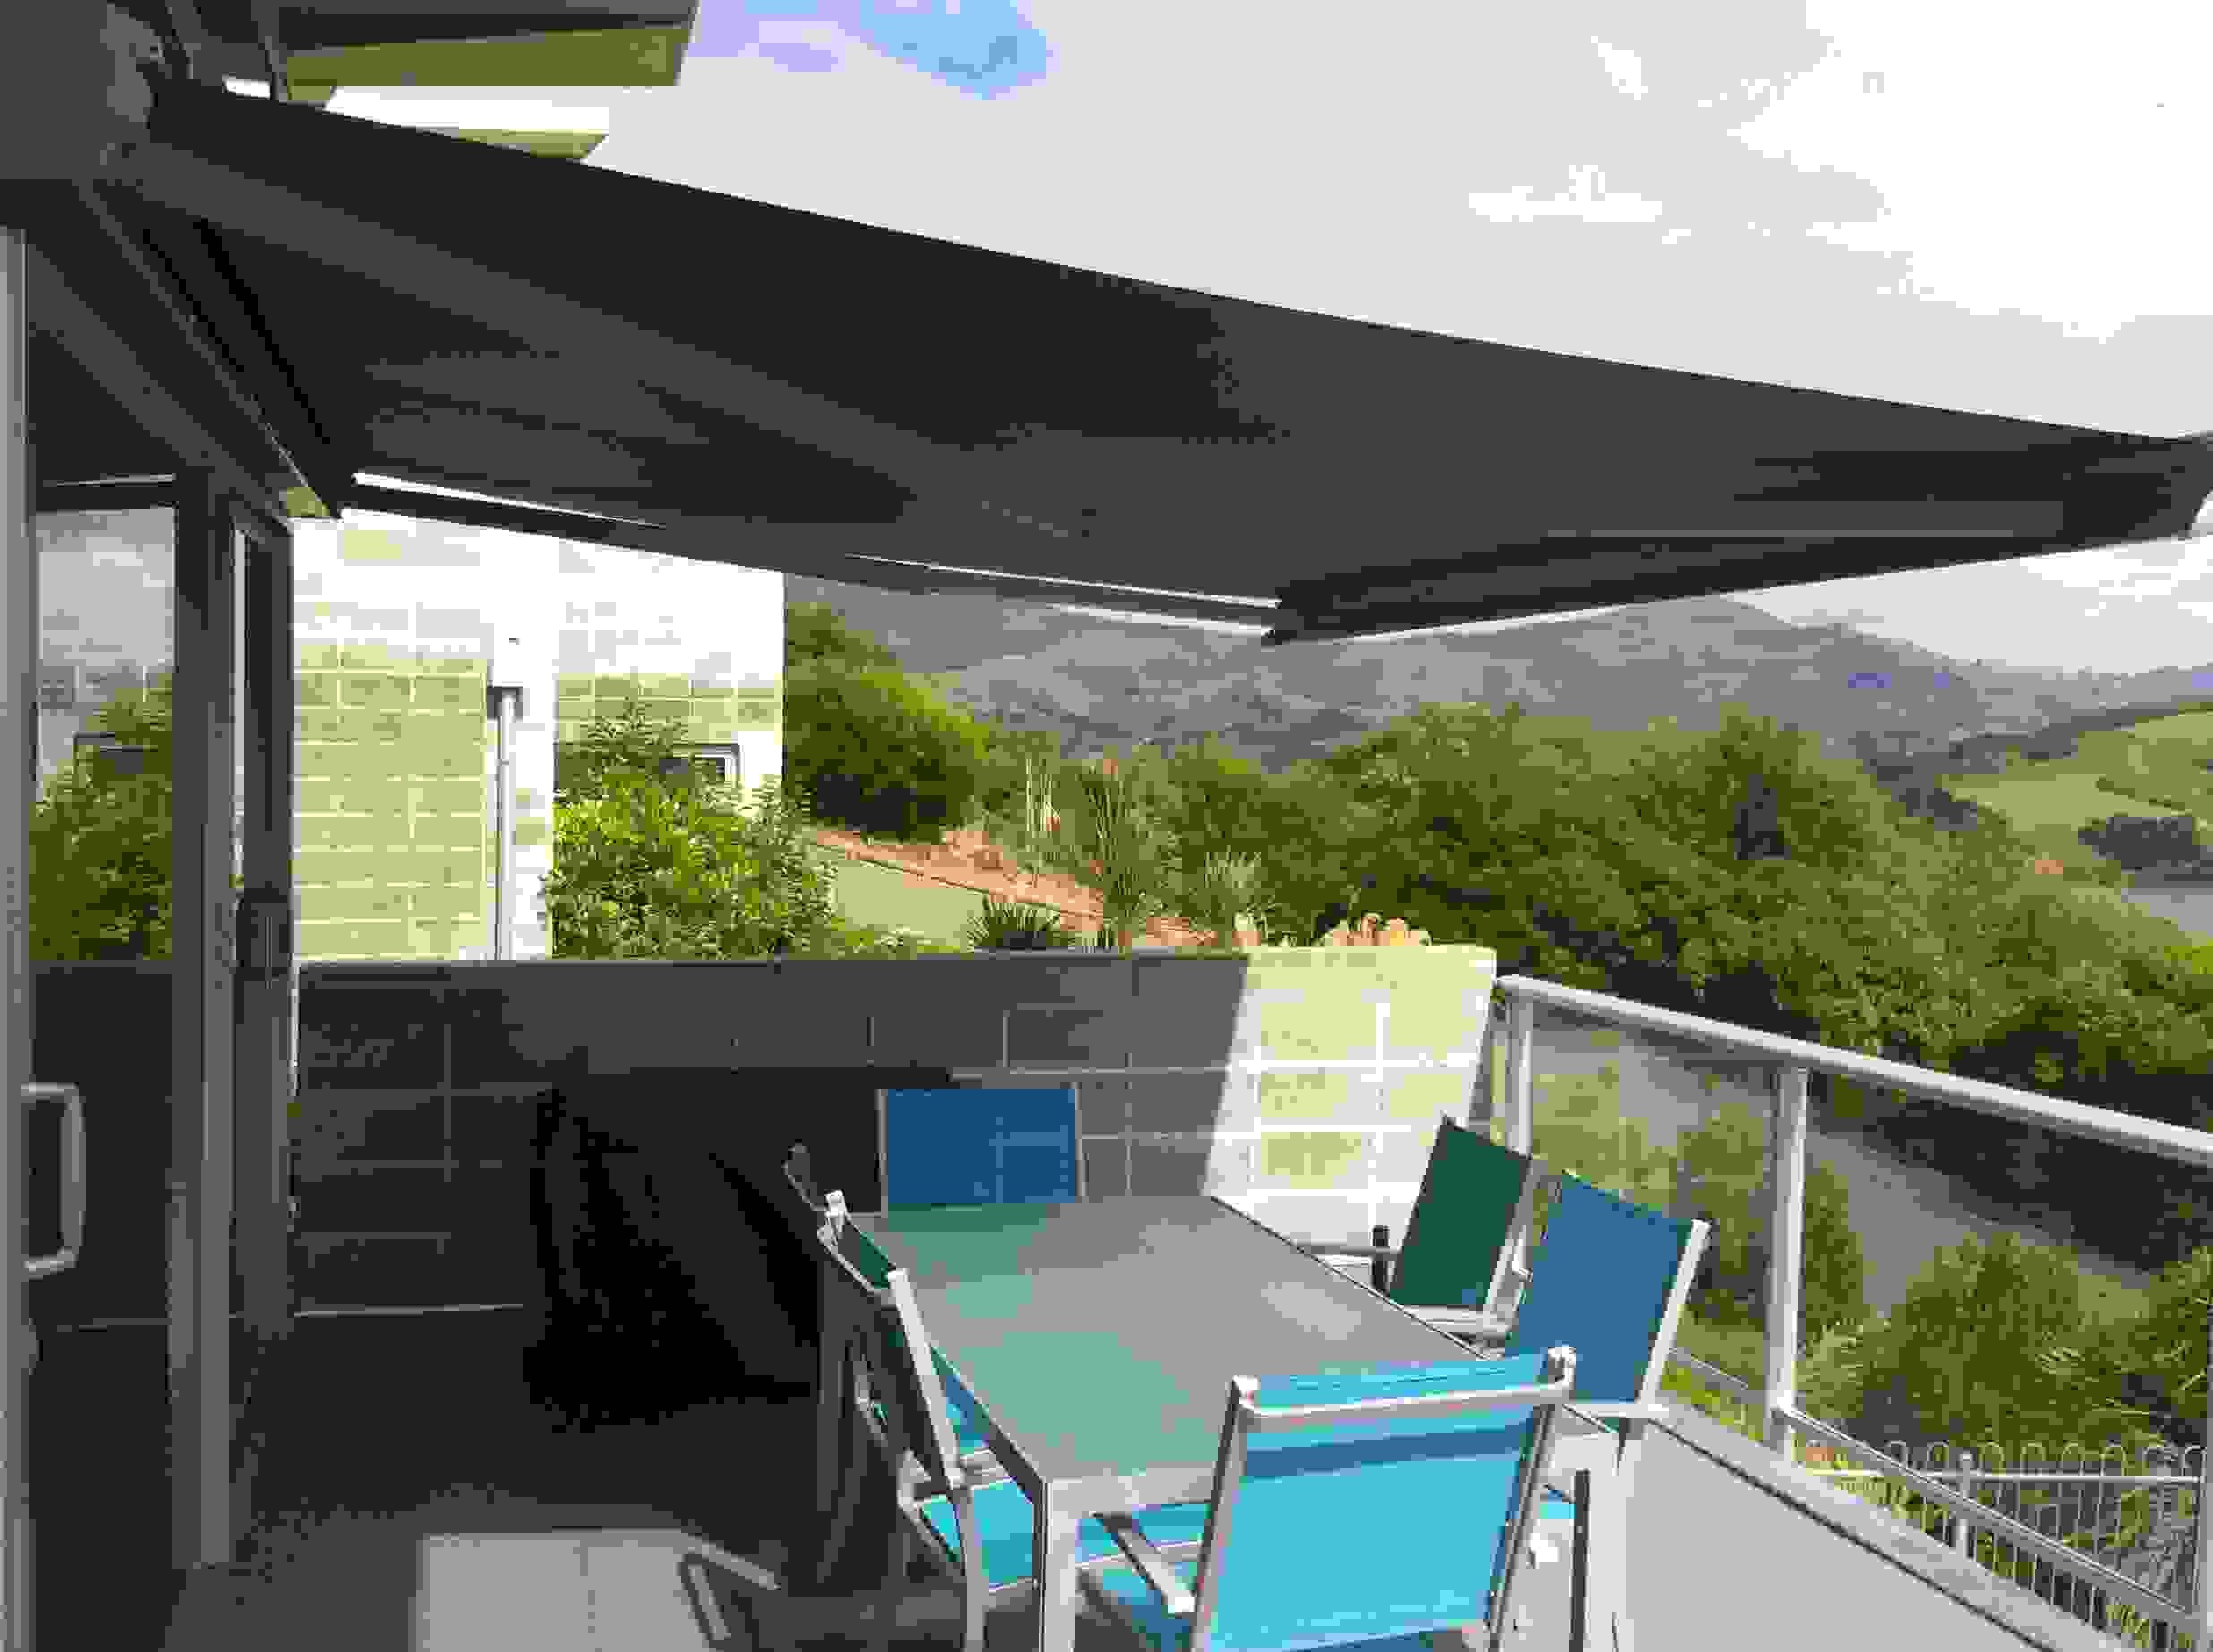 Cabriolet Retractable Awning